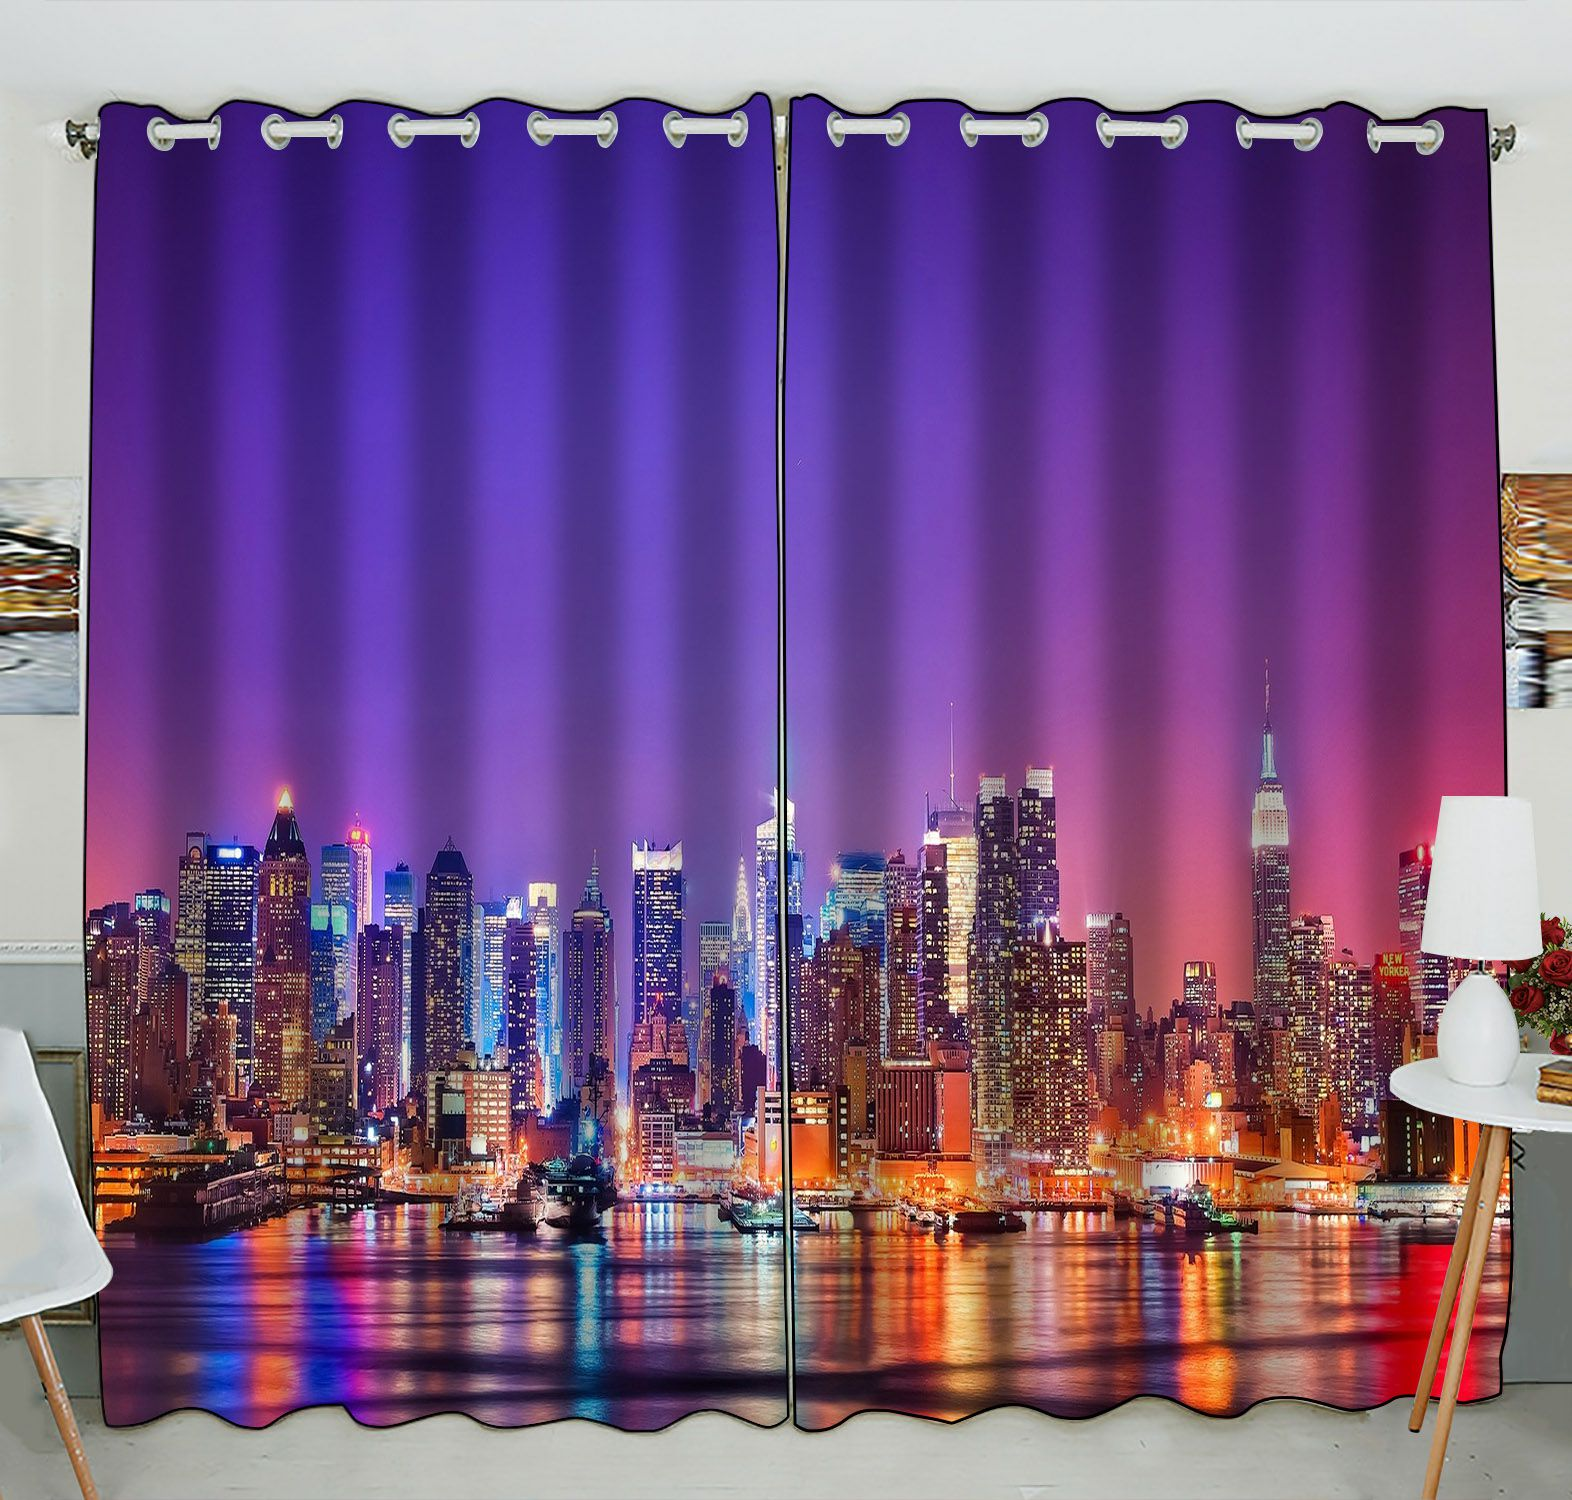 ZKGK New York City Skyline Window Curtain Drapery/Panels/Treatment For Living Room Bedroom Kids Rooms 52x84 inches Two Panel